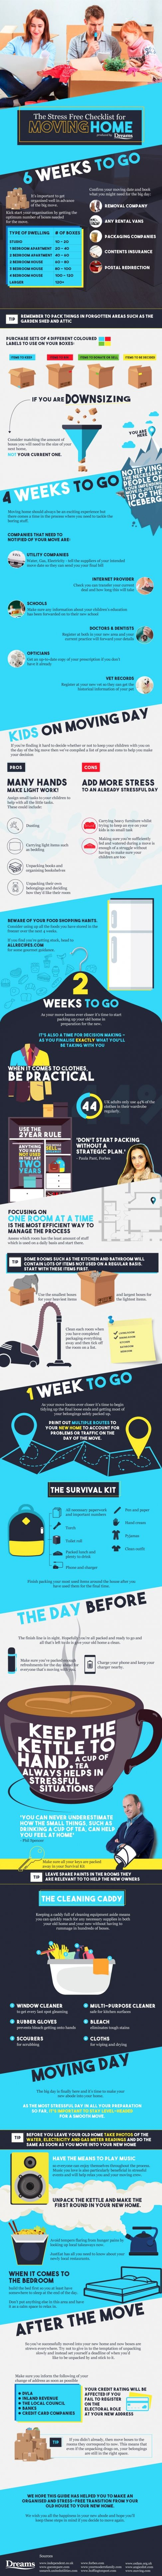 The Stress Free Checklist for Moving Home Infographic #Infographics